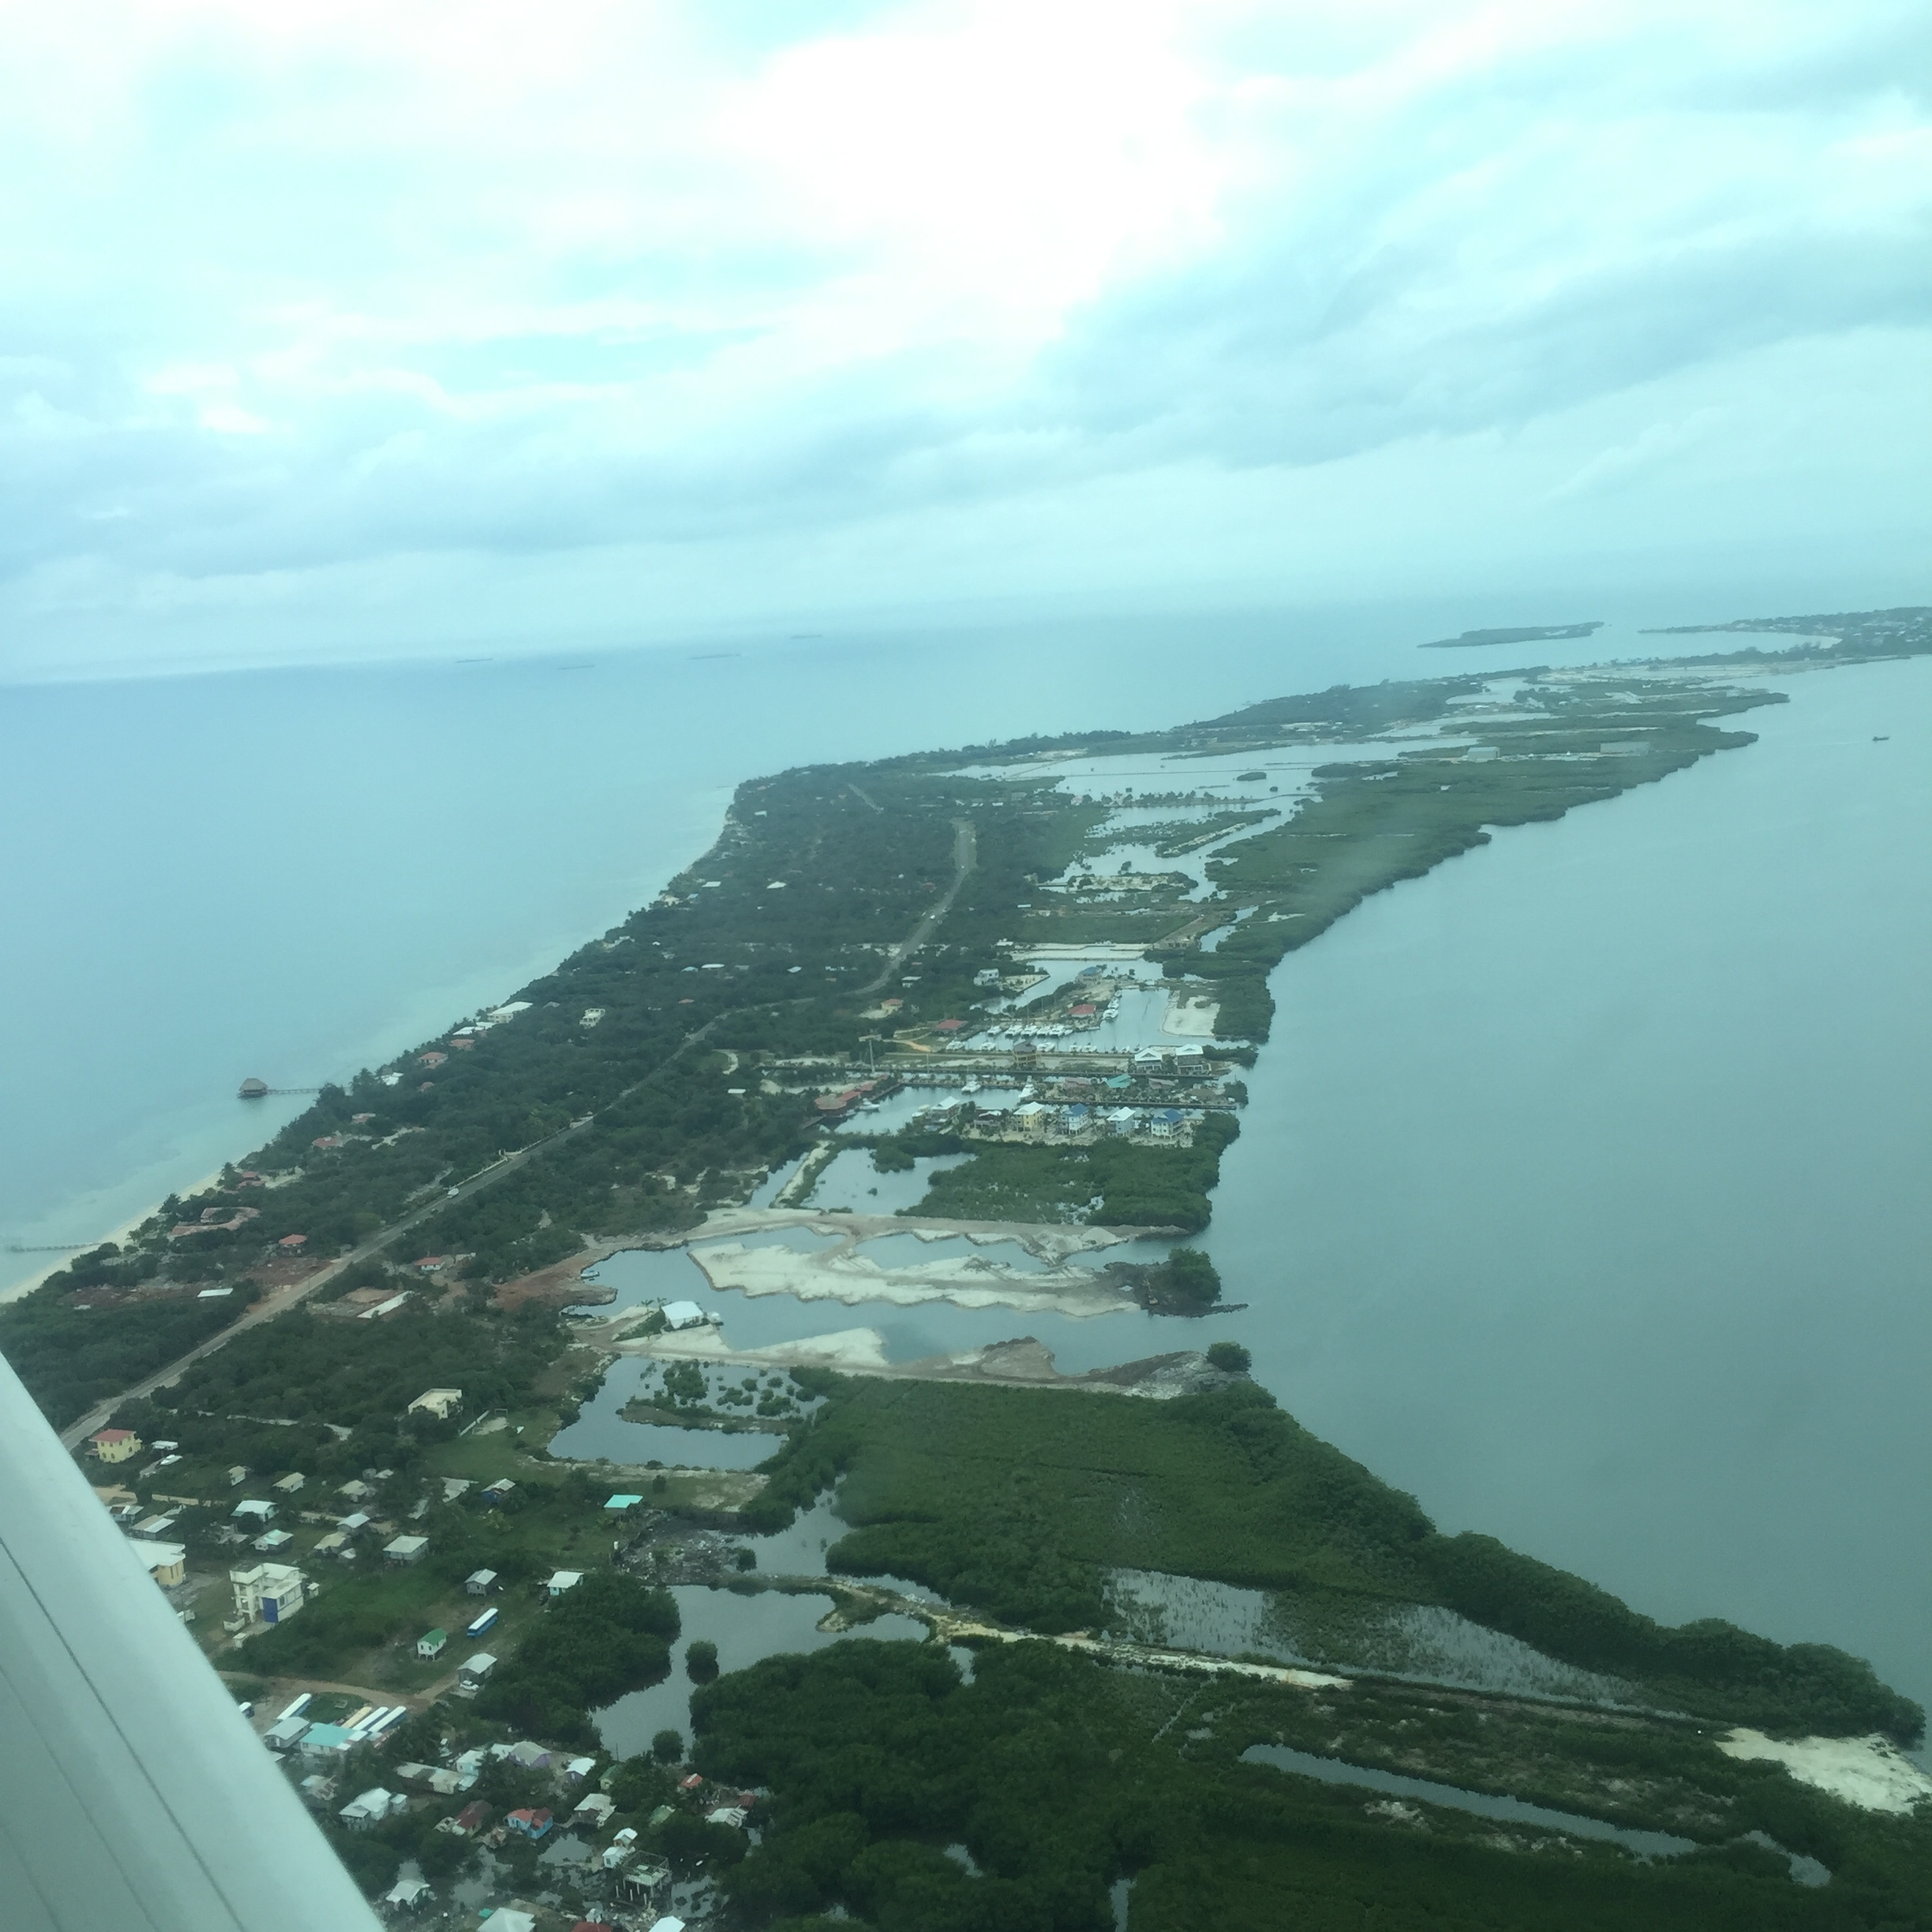 View of the Placencia peninsula from the window of the commuter plane.